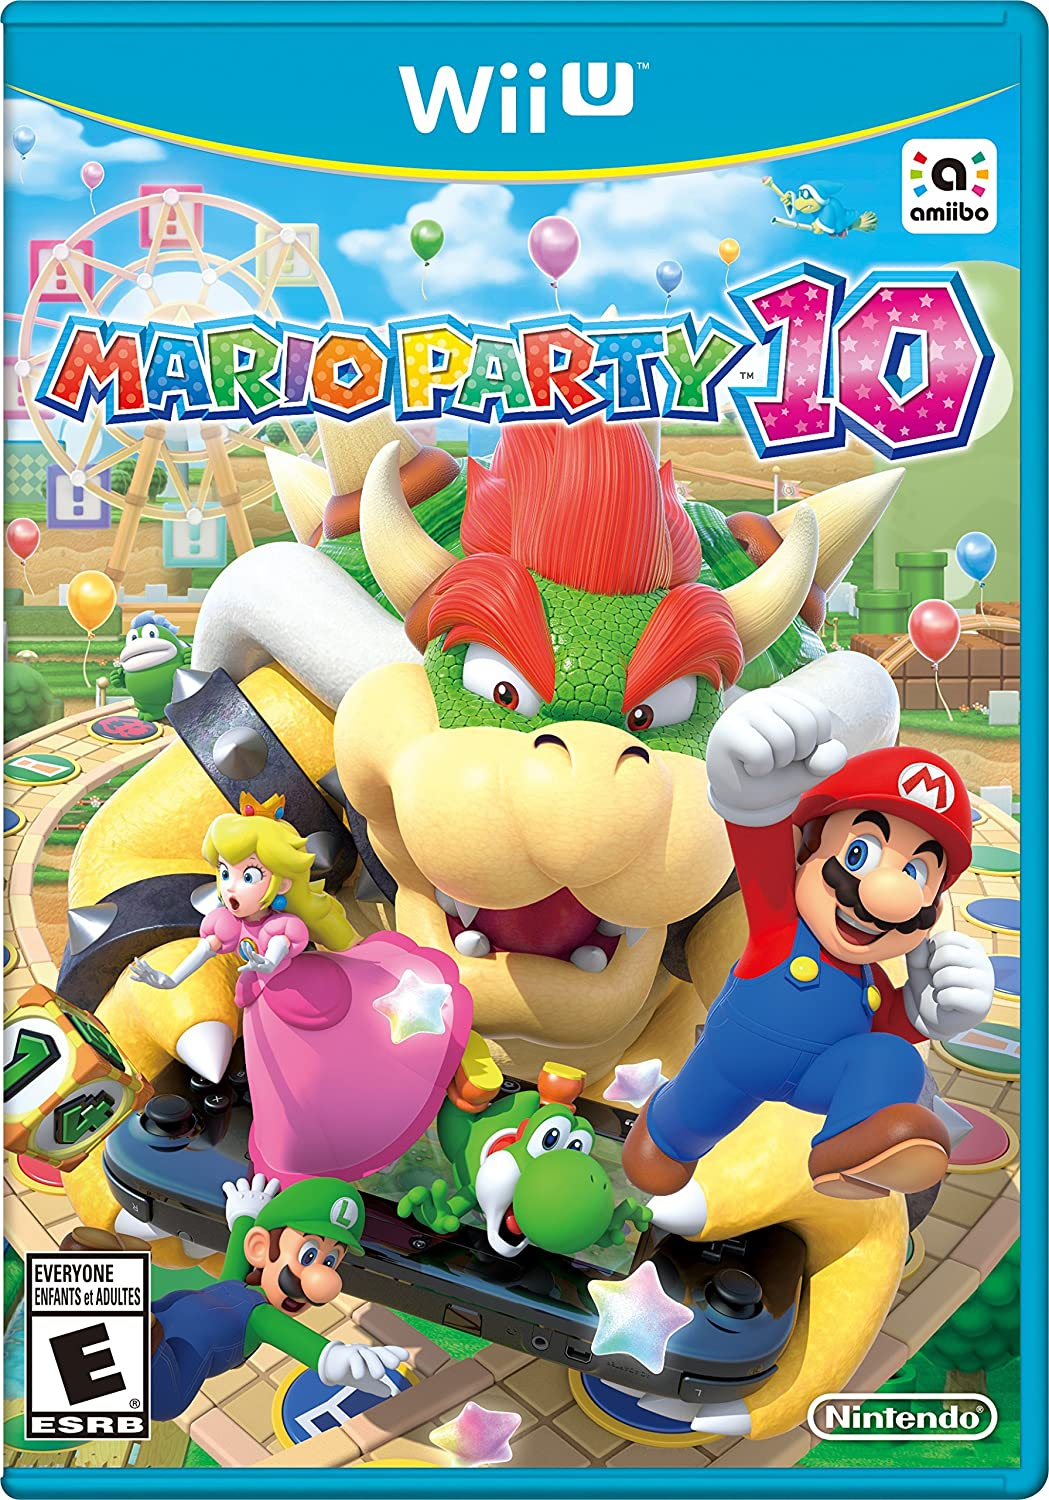 Amazon.com: Mario Party 10: Wii U: Nintendo of America ...